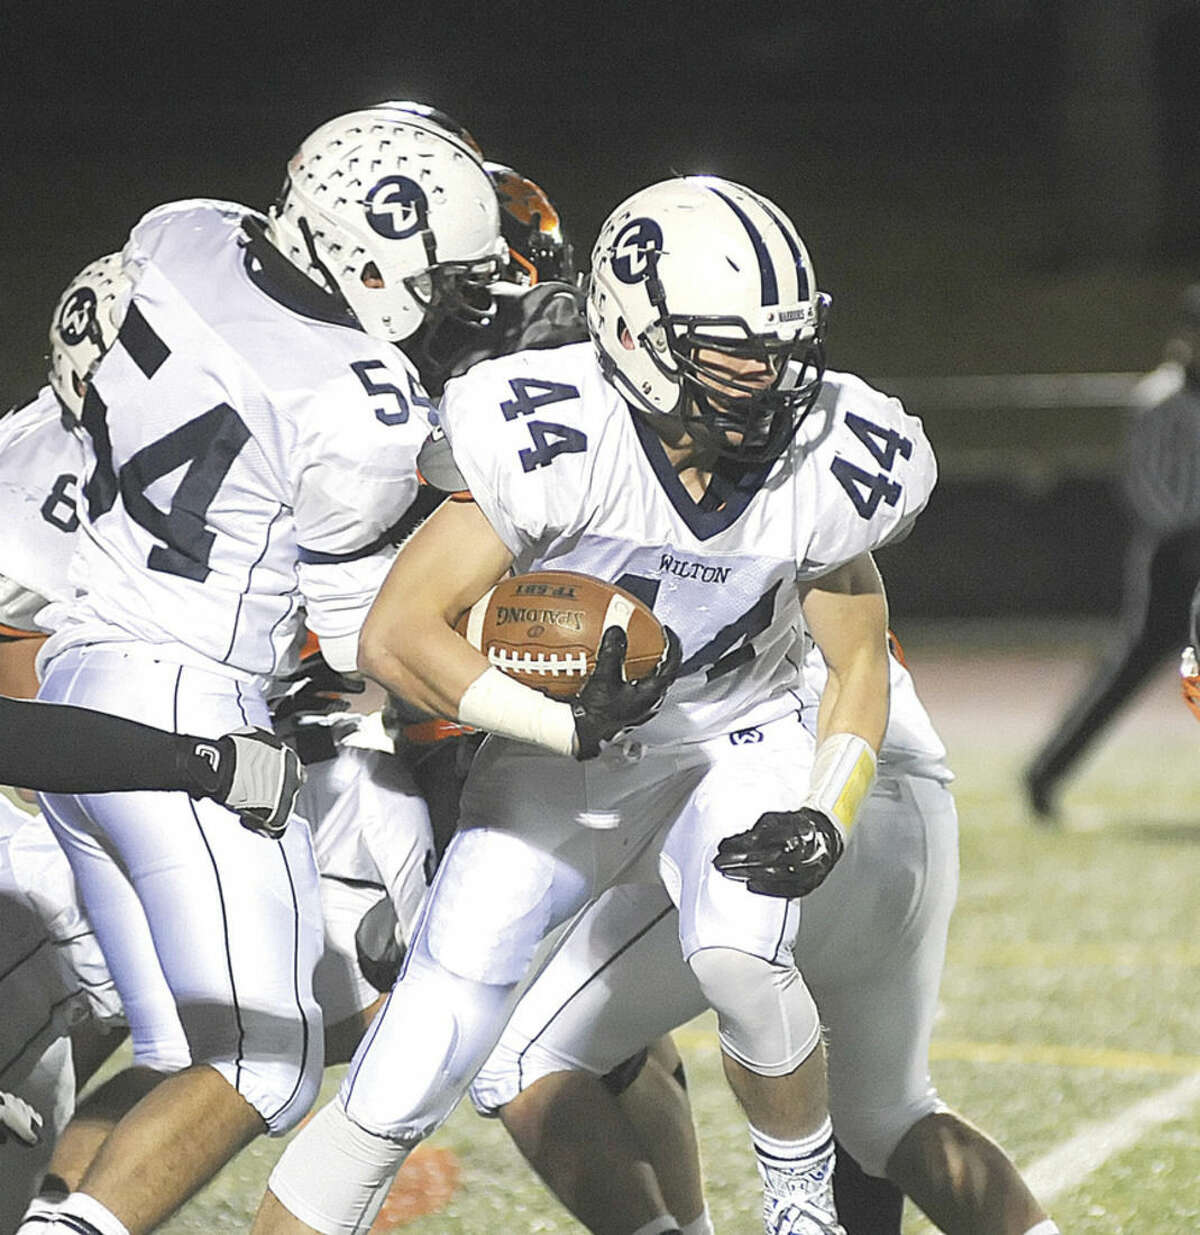 Hour photo/John Nash Wilton's Jack Dexter is going to UConn as a preferred walk on.